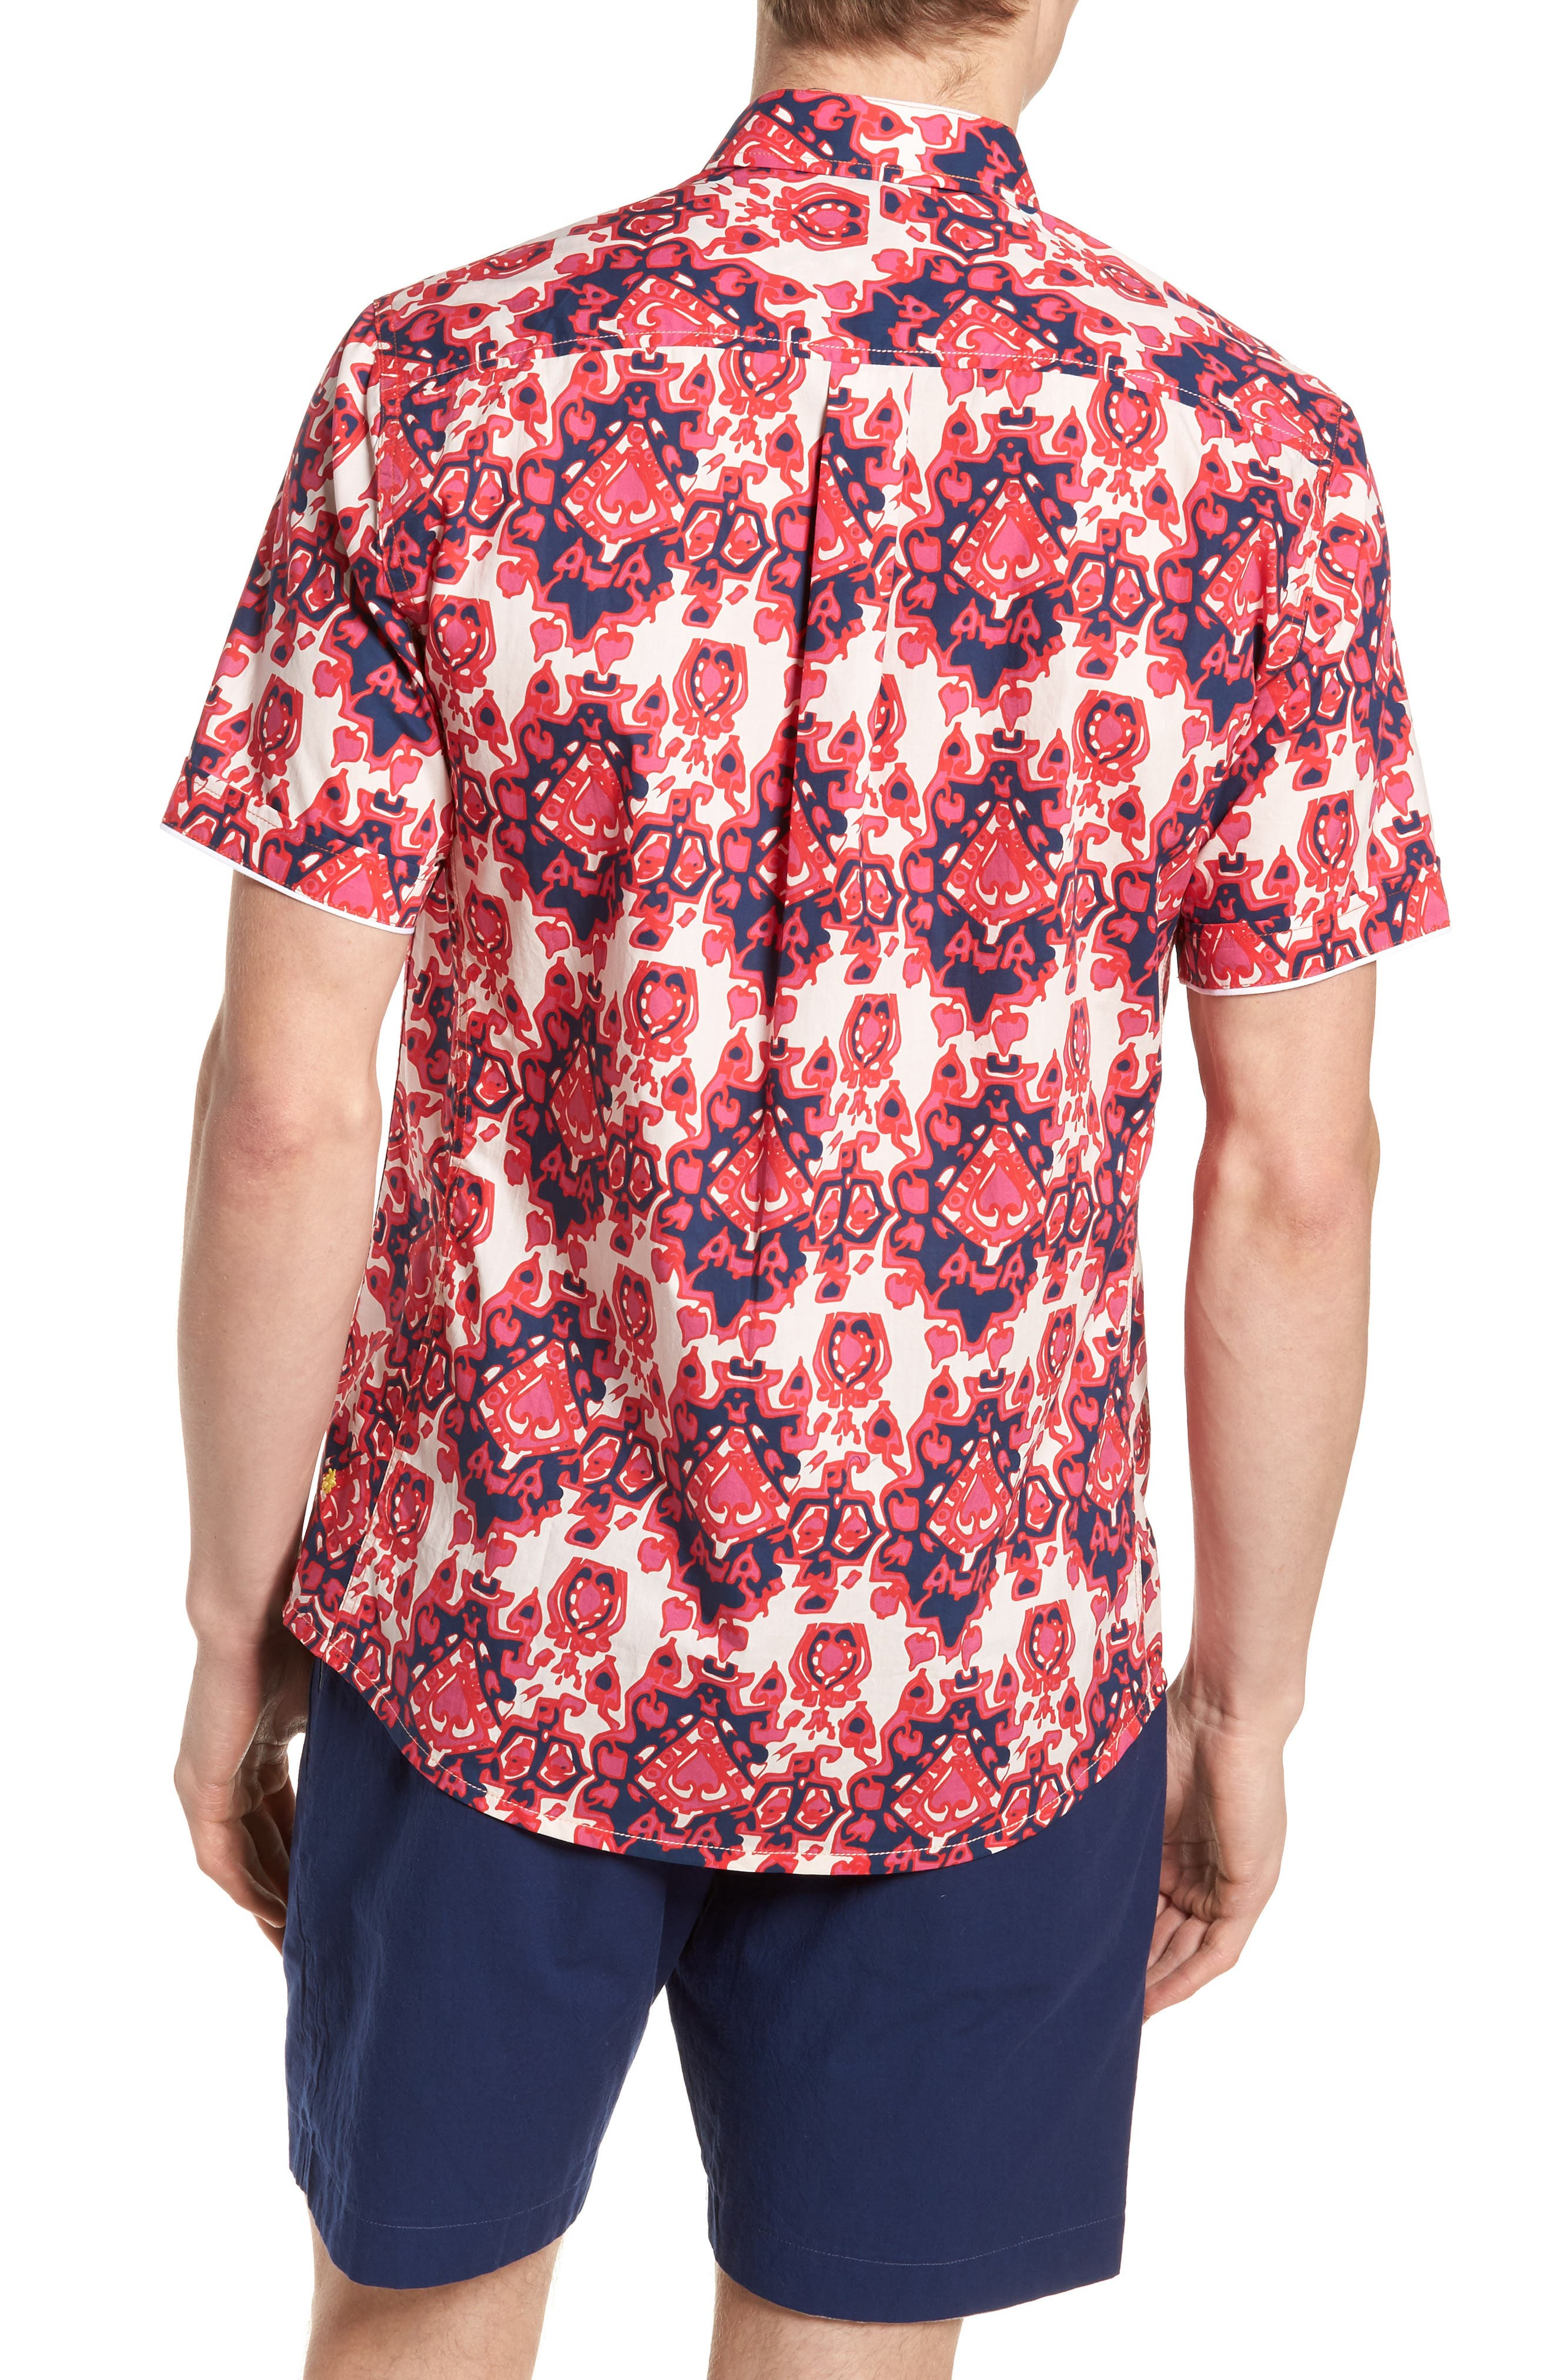 Abstract Culture Woven Shirt,                             Alternate thumbnail 2, color,                             600